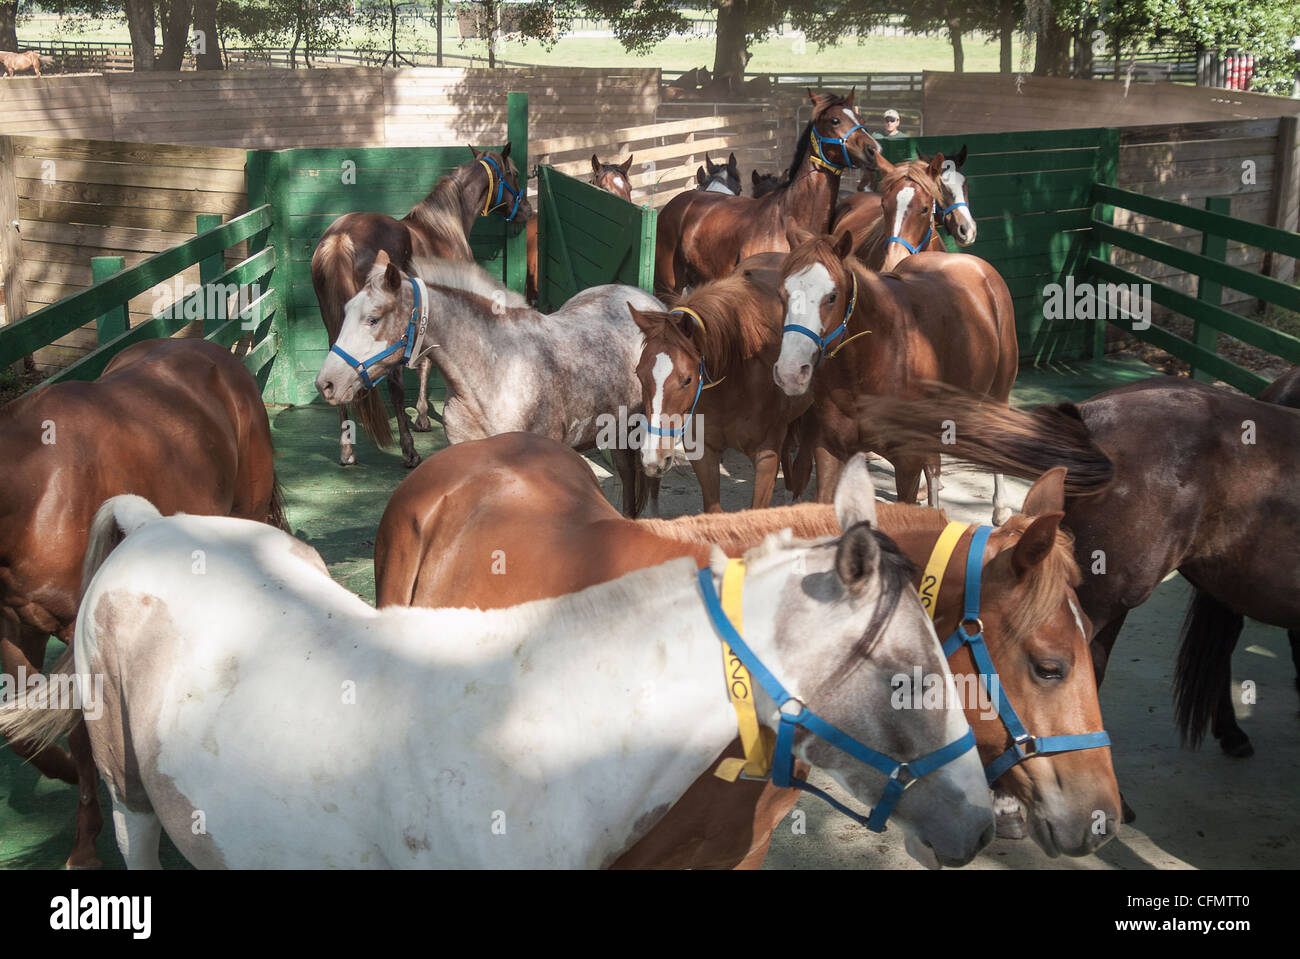 Mares Being Herded Along Shute At Horse Breeding Facility Stock Photo Alamy